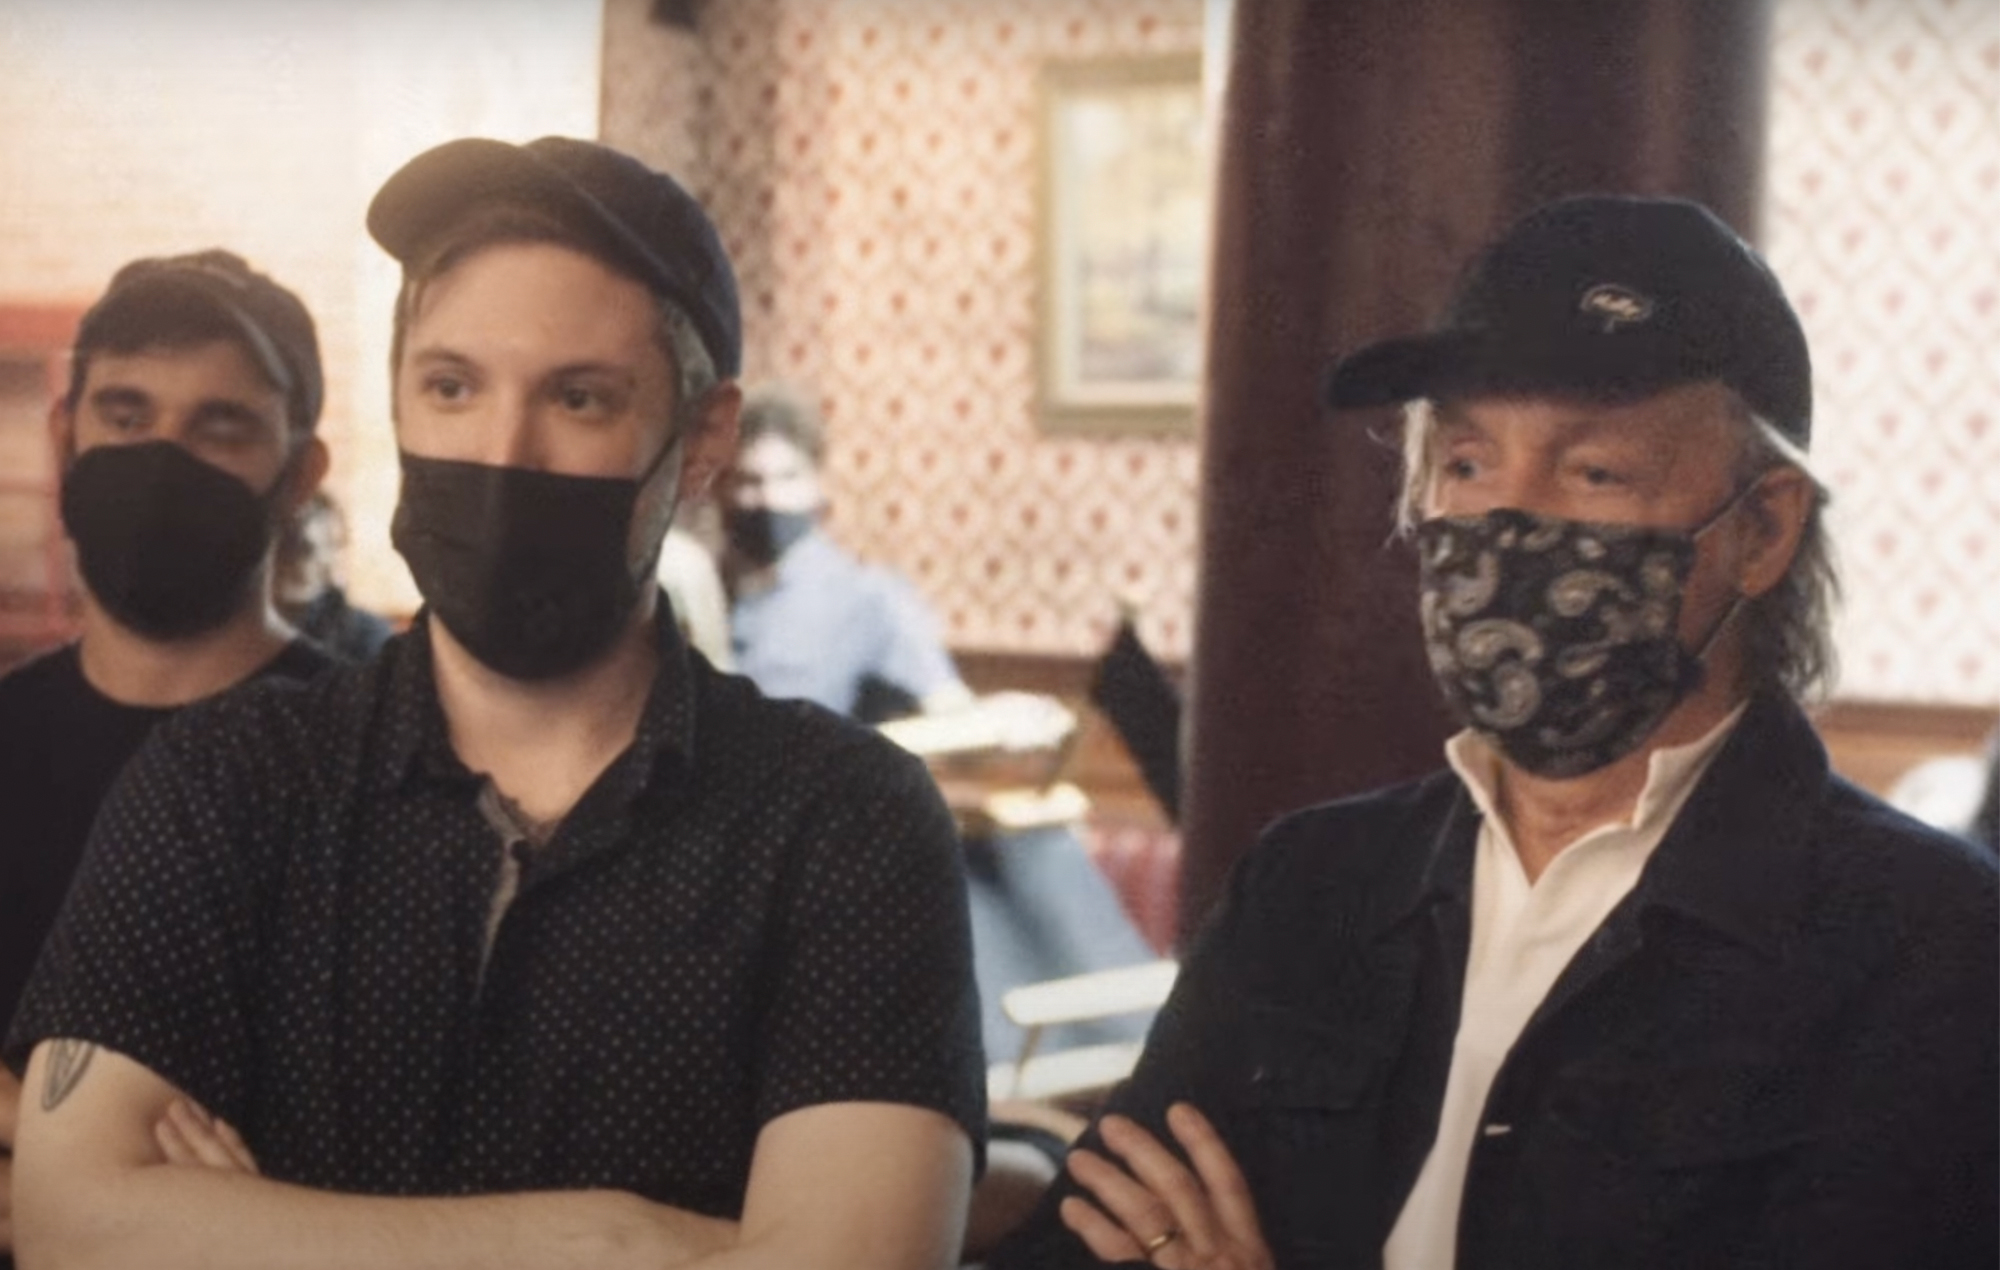 Paul McCartney (right) and Andrew Donaho (left) on the set of McCartney's 'Find My Way' video